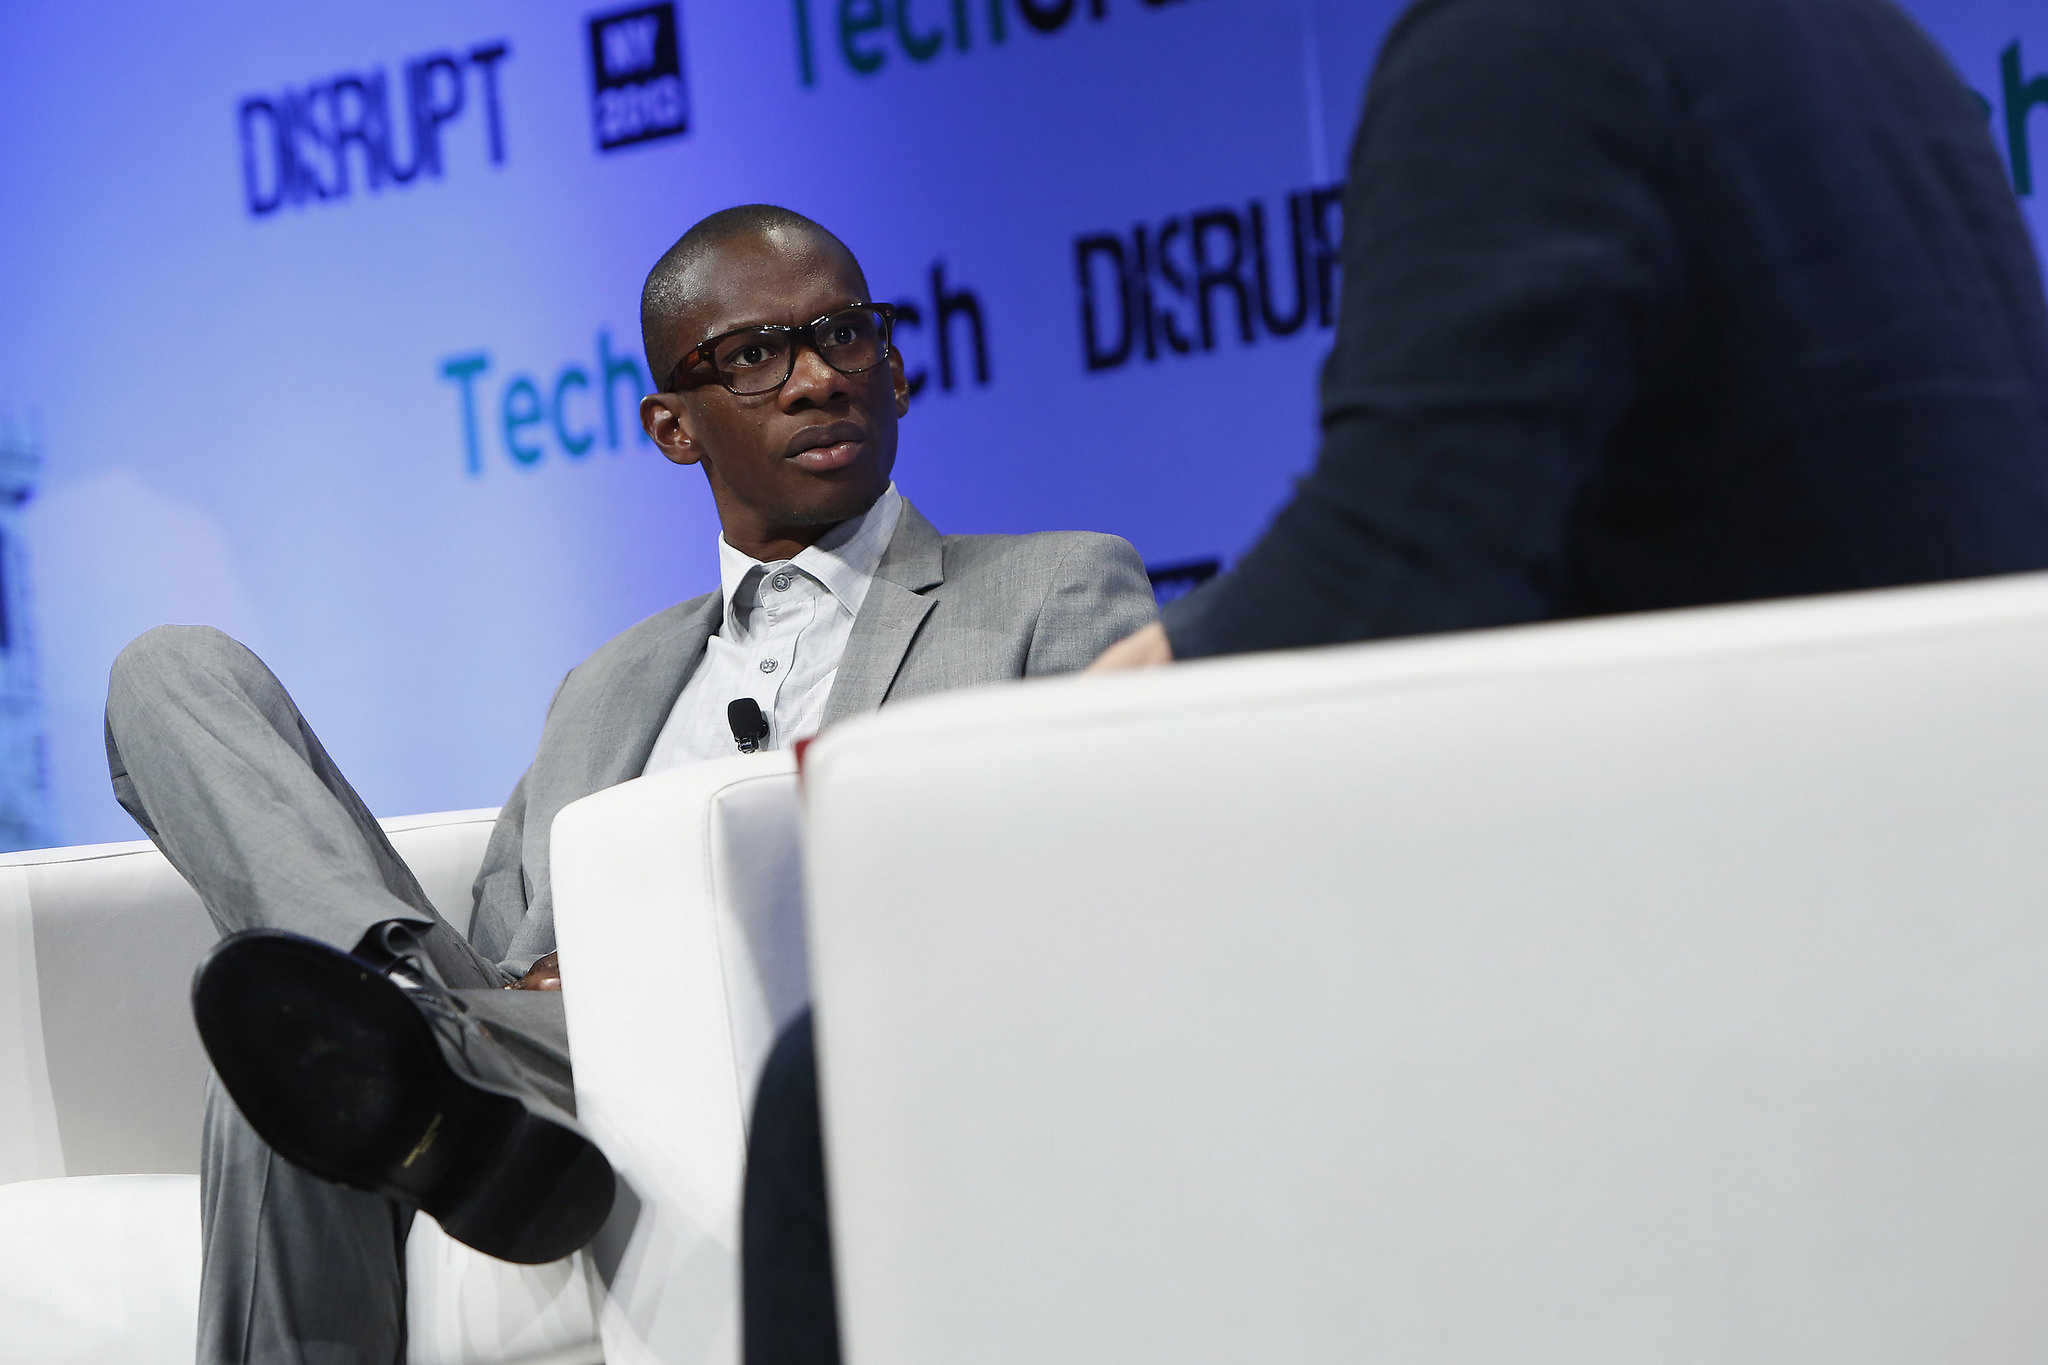 Troy Carter is bringing his talents to Spotify.